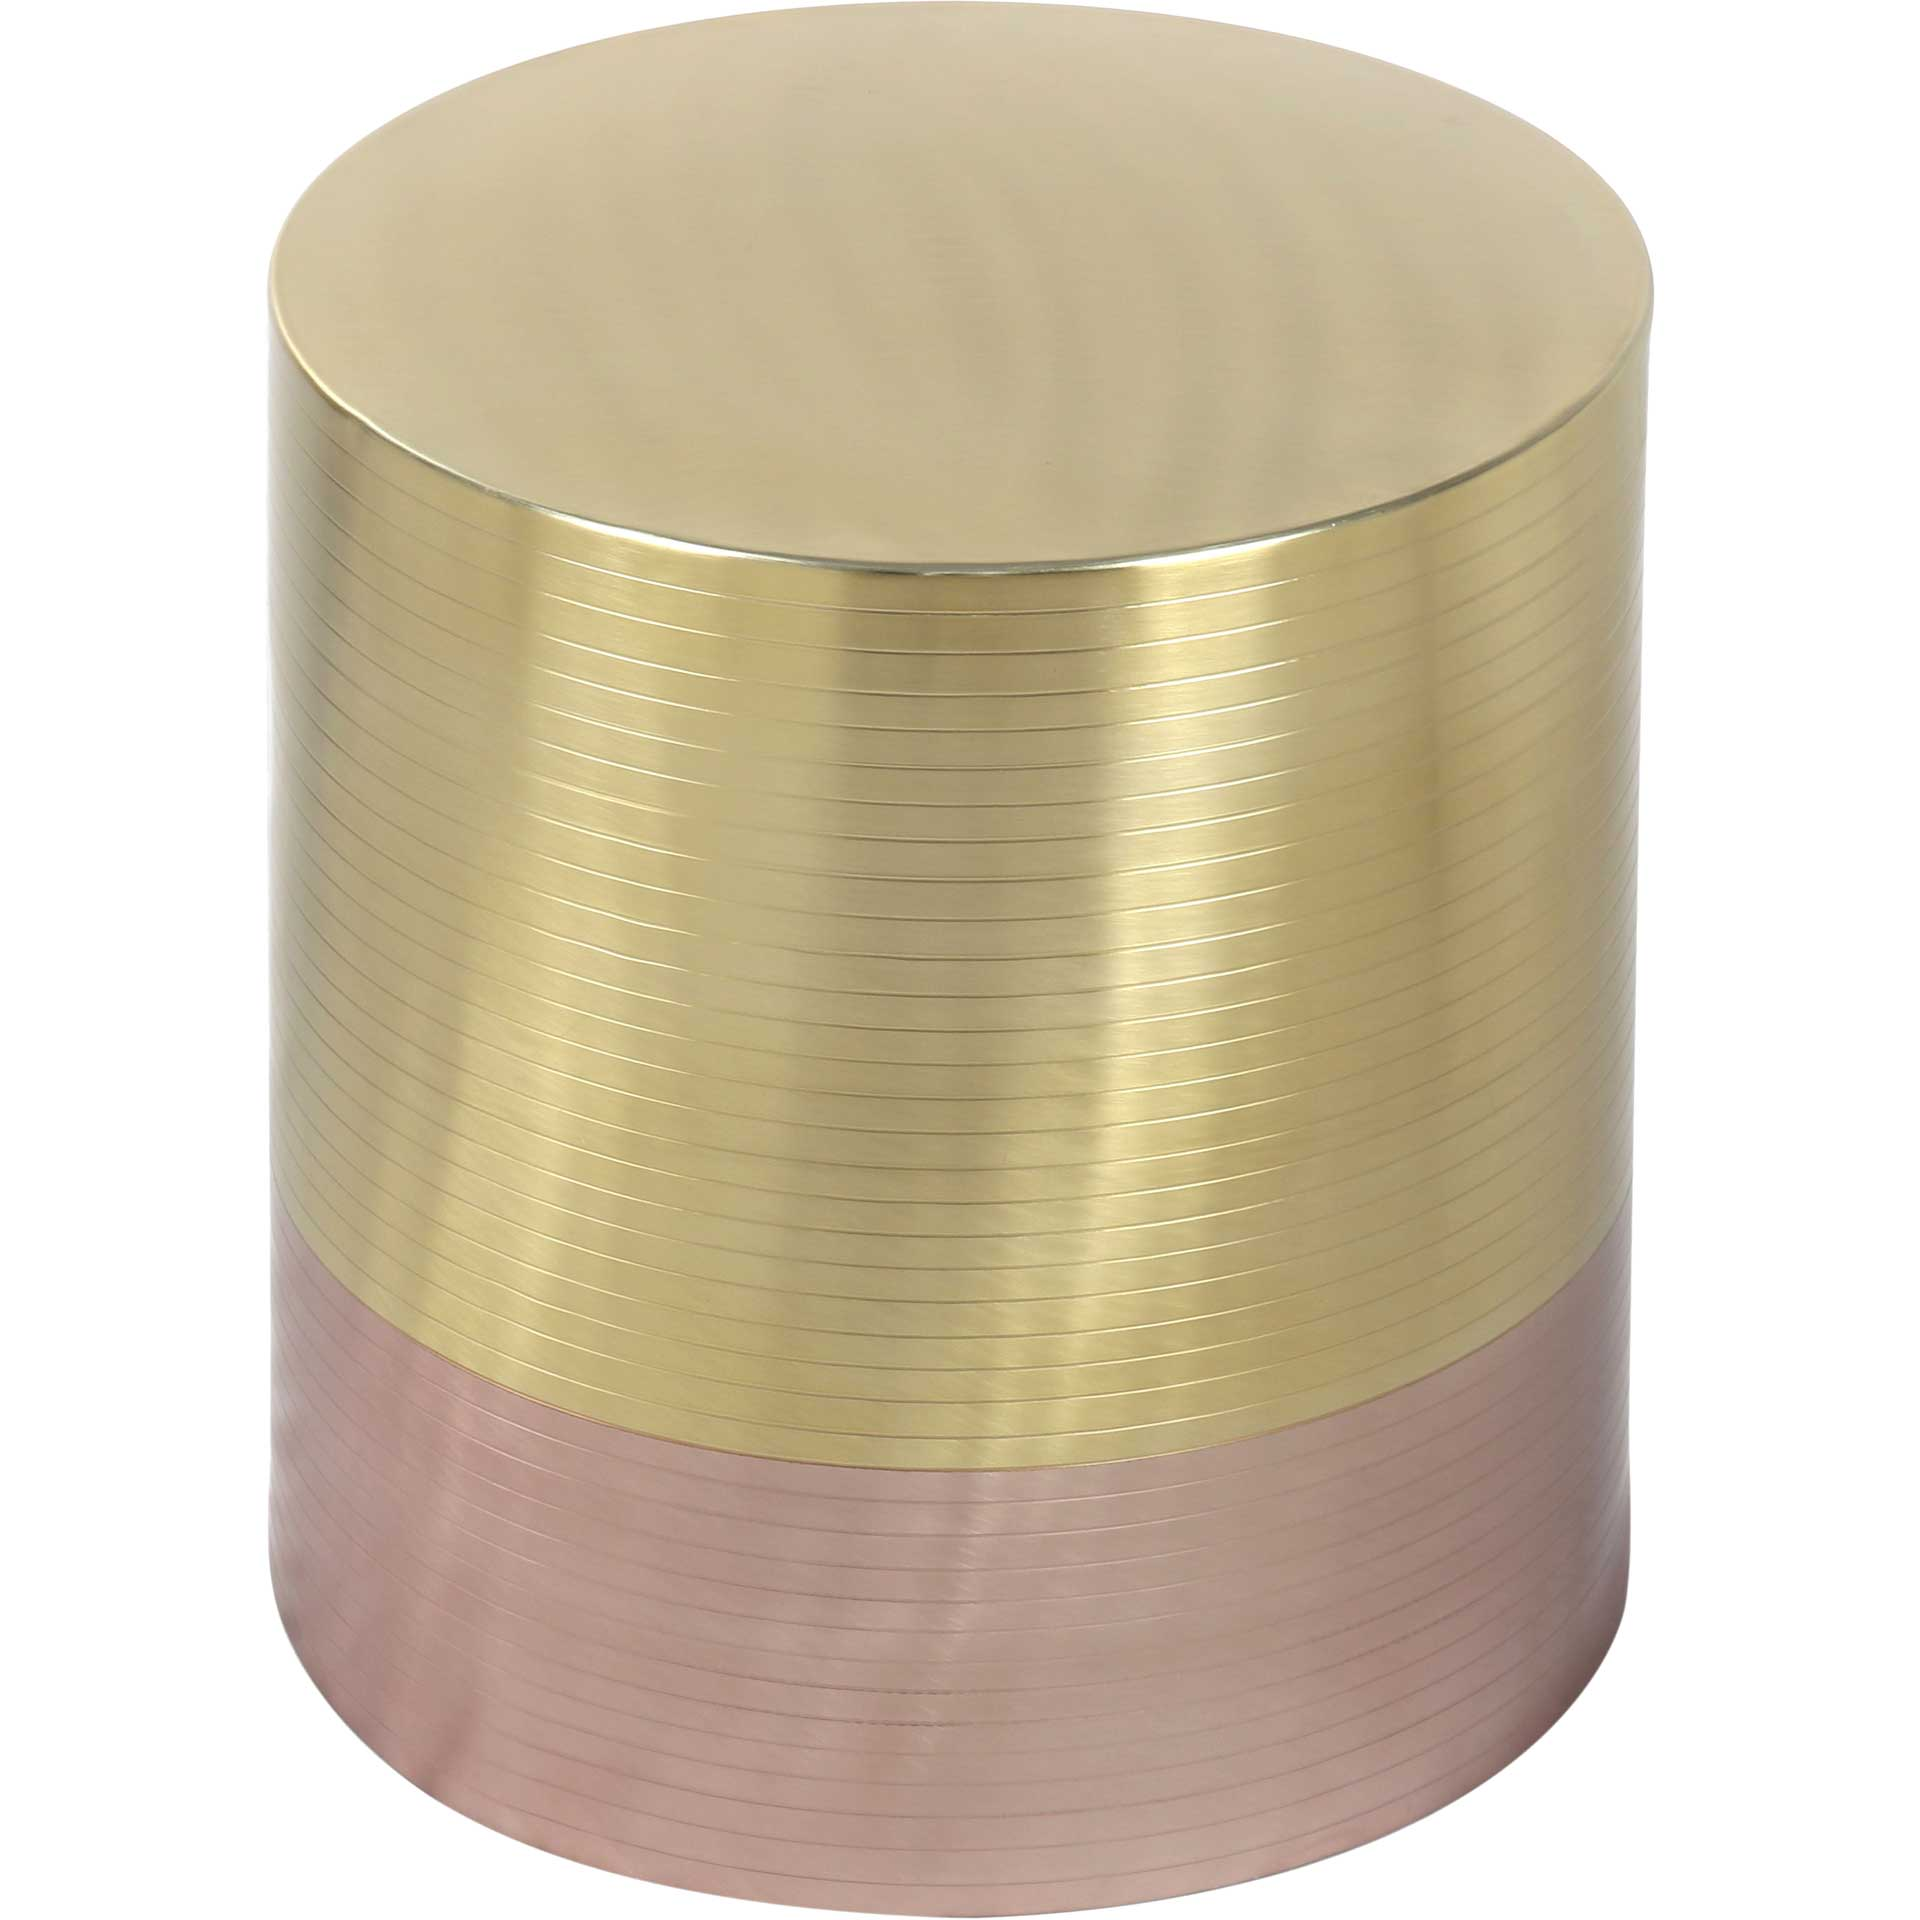 Paloma Accent Table Gold/Rose Gold